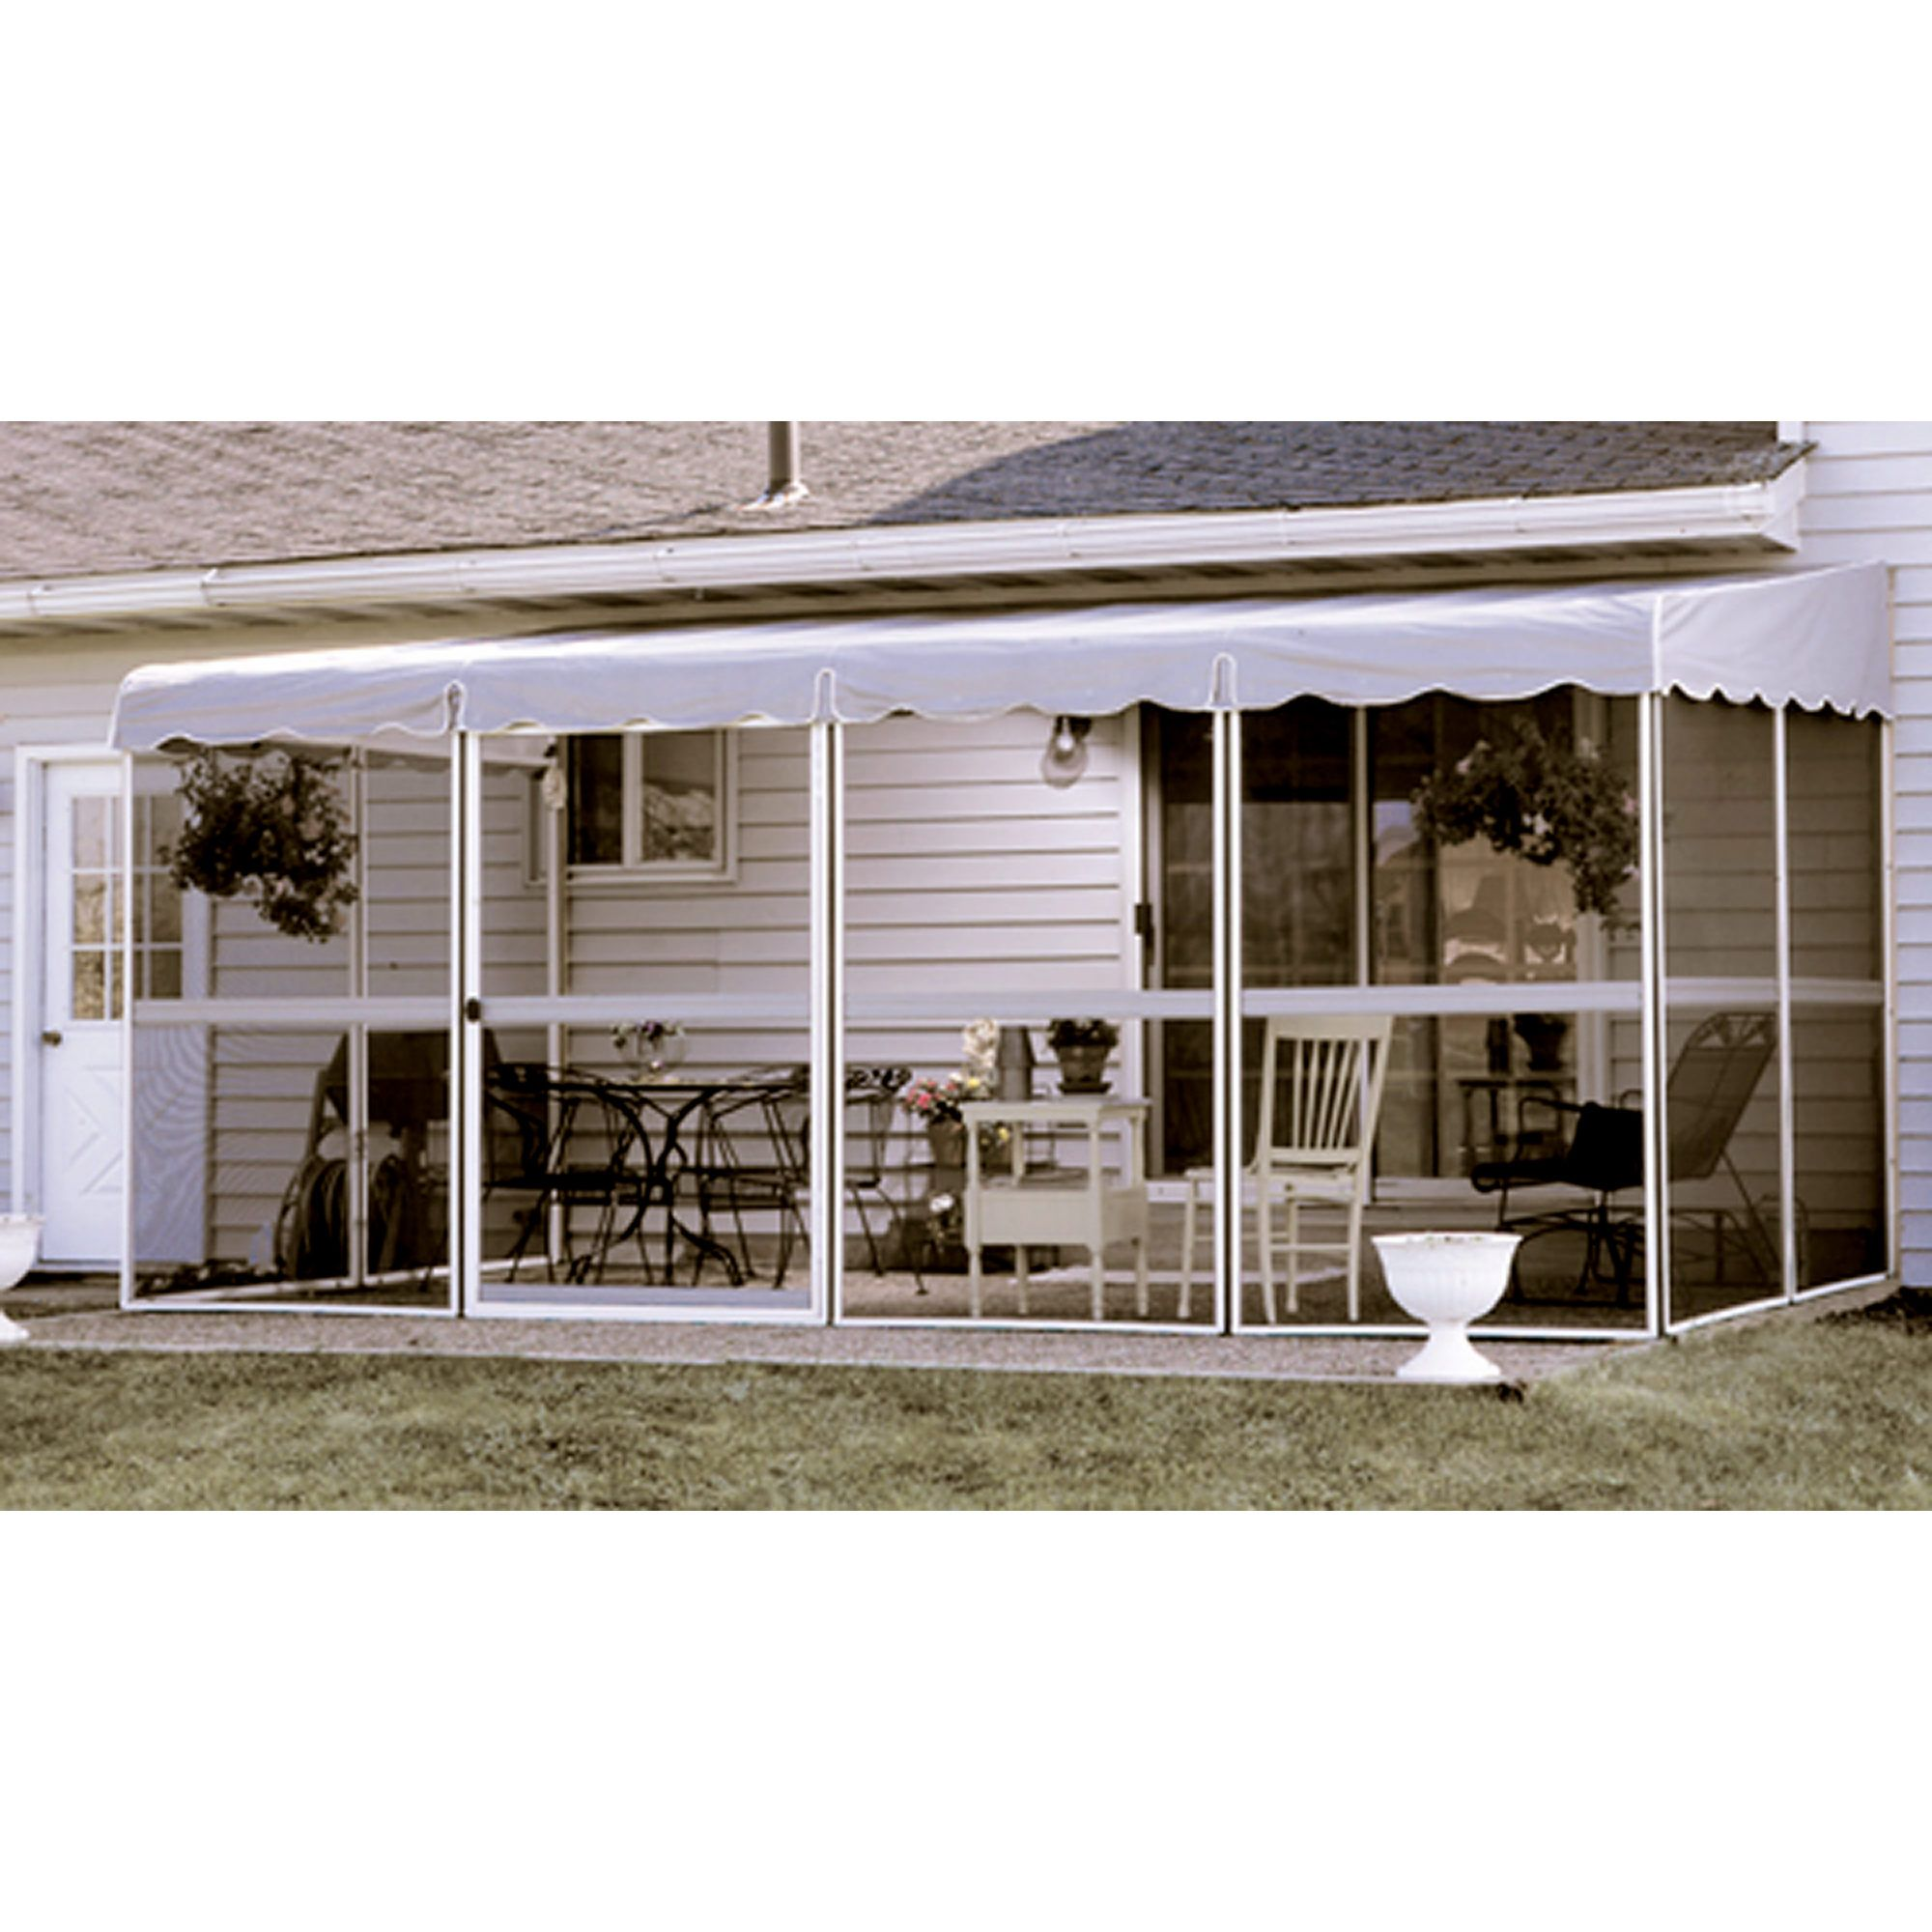 Patio-Mate White 17u00271 l x 8u00276 w Screened Enclosure - BJs Wholesale Club  sc 1 st  Pinterest & Patio-Mate White 17u00271